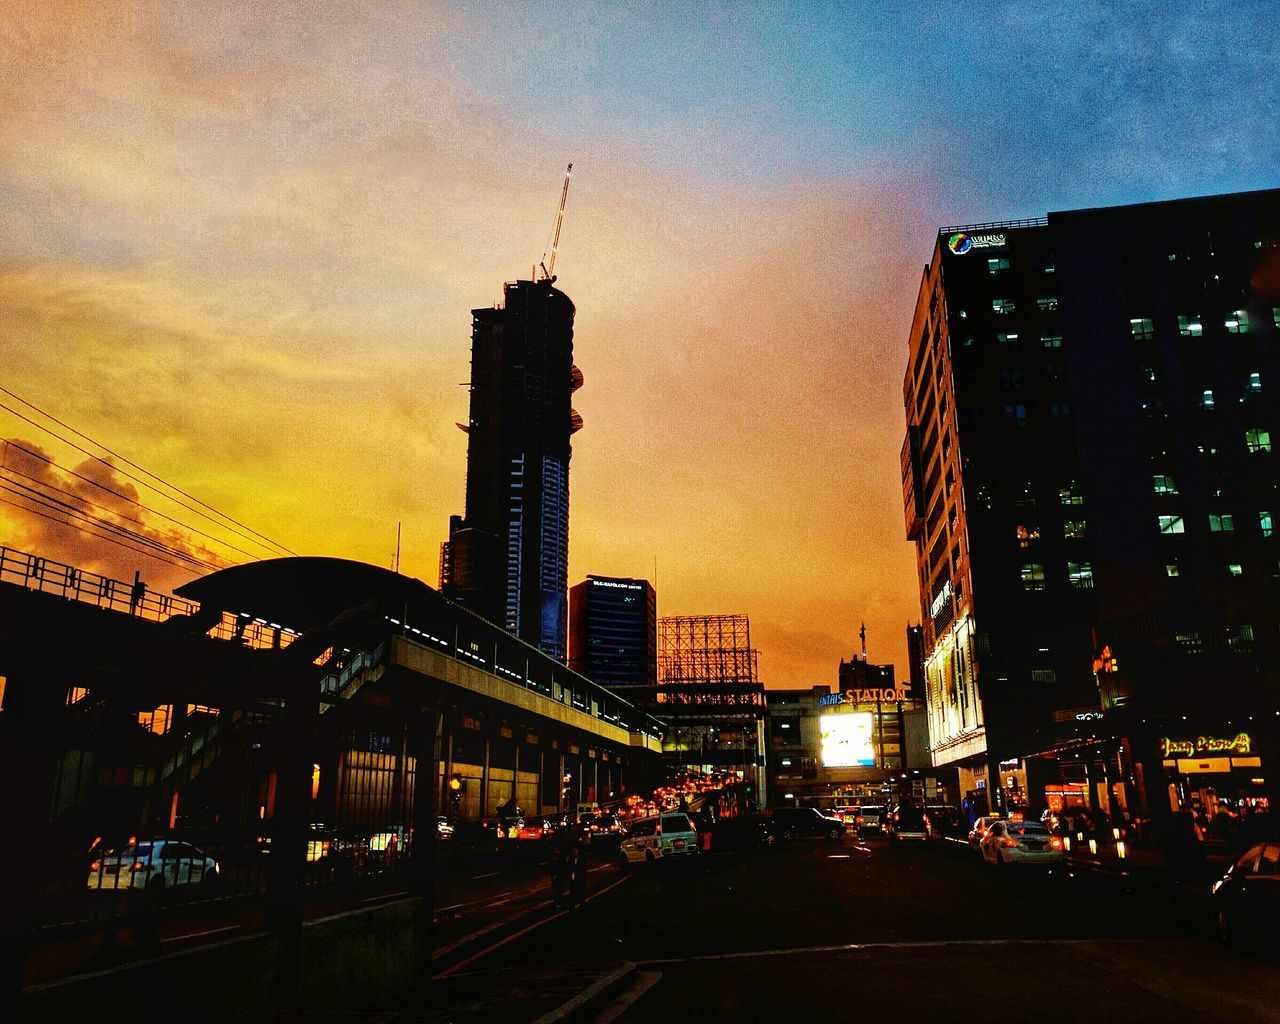 Centris Walk City City Lights City View  City Lights At Night Sunset_collection City Sunset Sunset Lights At Night Walking Around Eyeem Philippines Eyeem Collection Street Photography City Photography Philippines